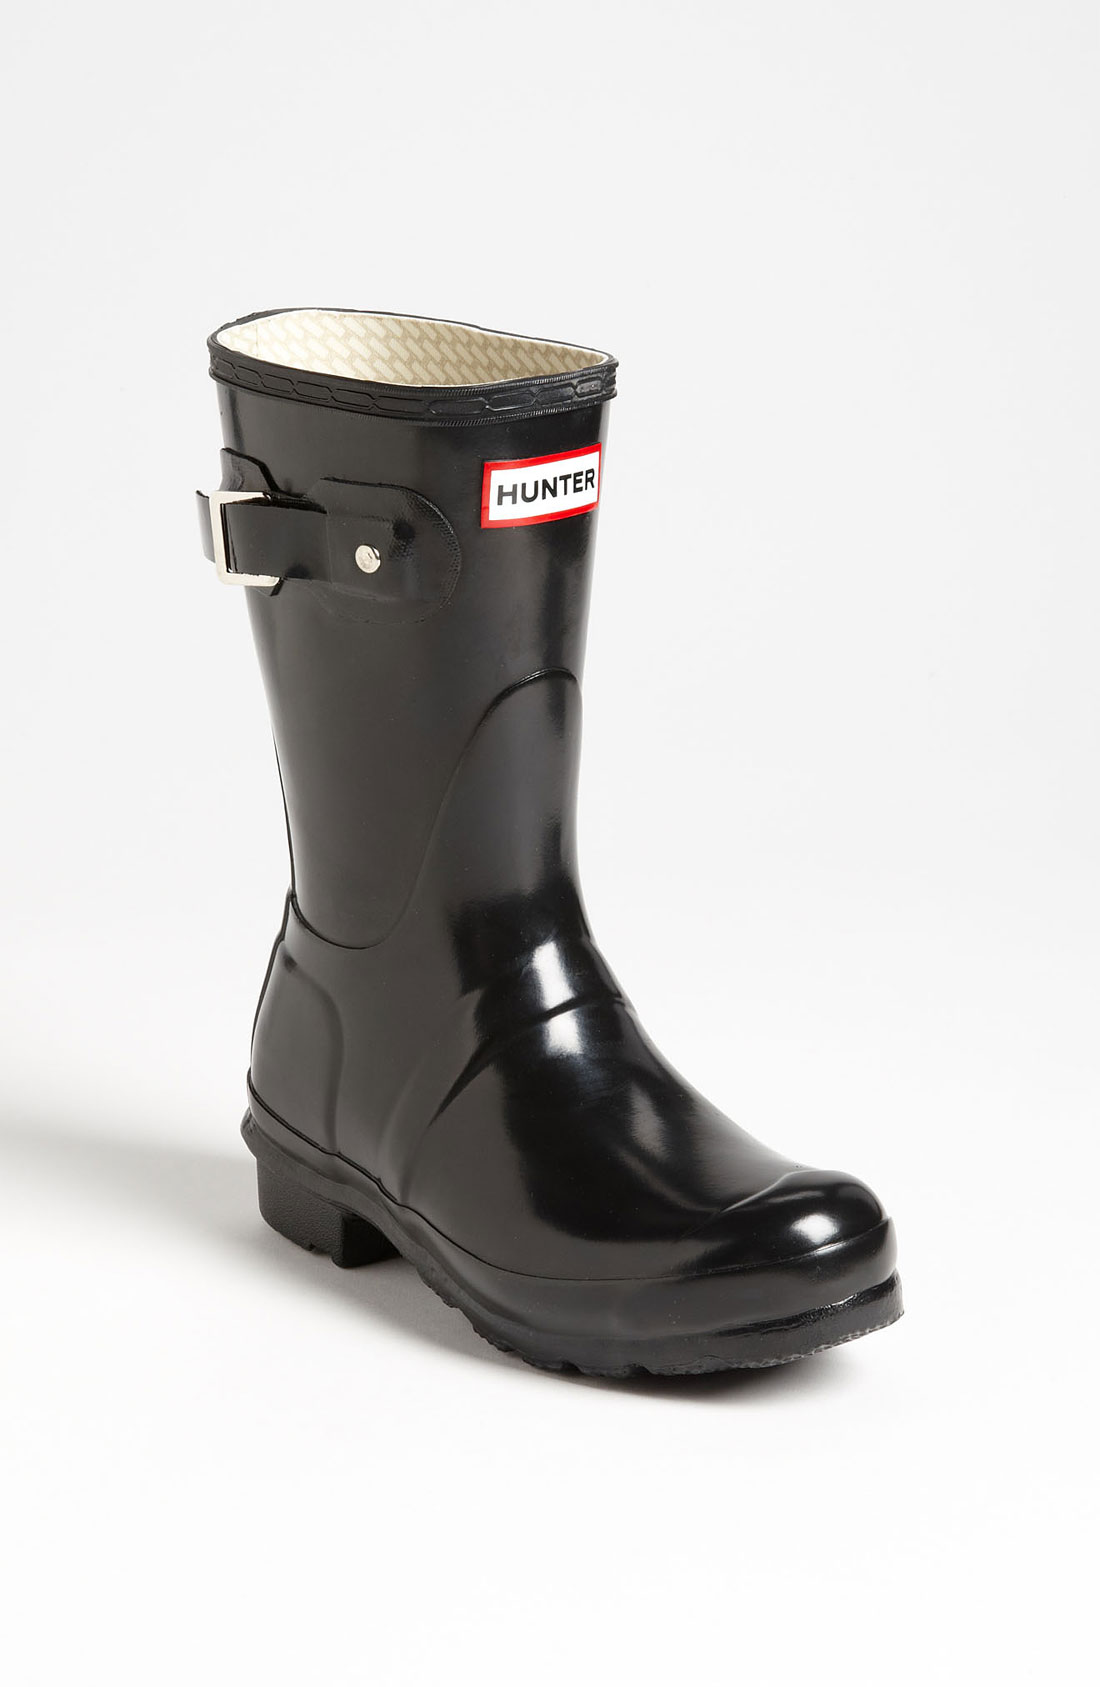 Innovative Hunter U2018Original Tallu2019 Gloss Rain Boot For Women | Faeaa